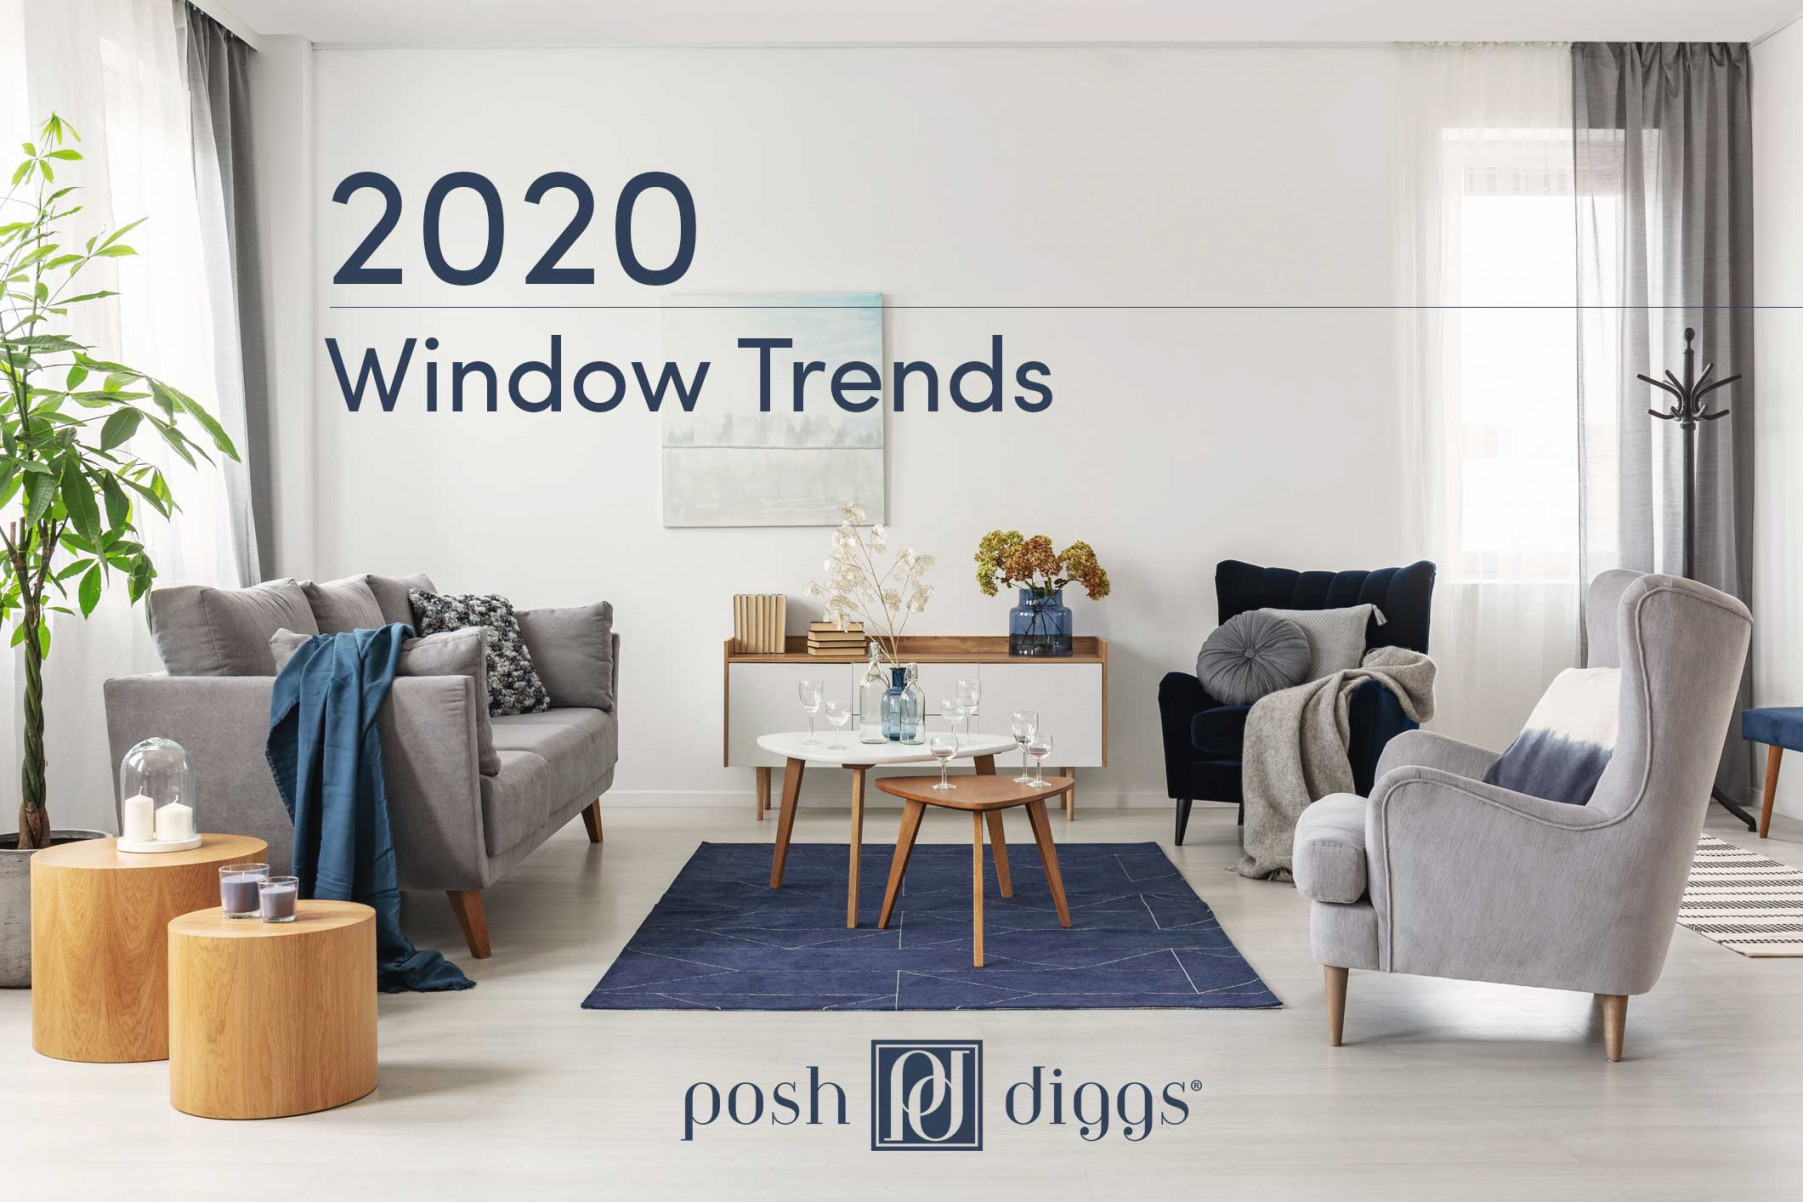 2020 Trends In Curtains And Window Treatments – Posh Diggs with Living Room Curtains And Drapes